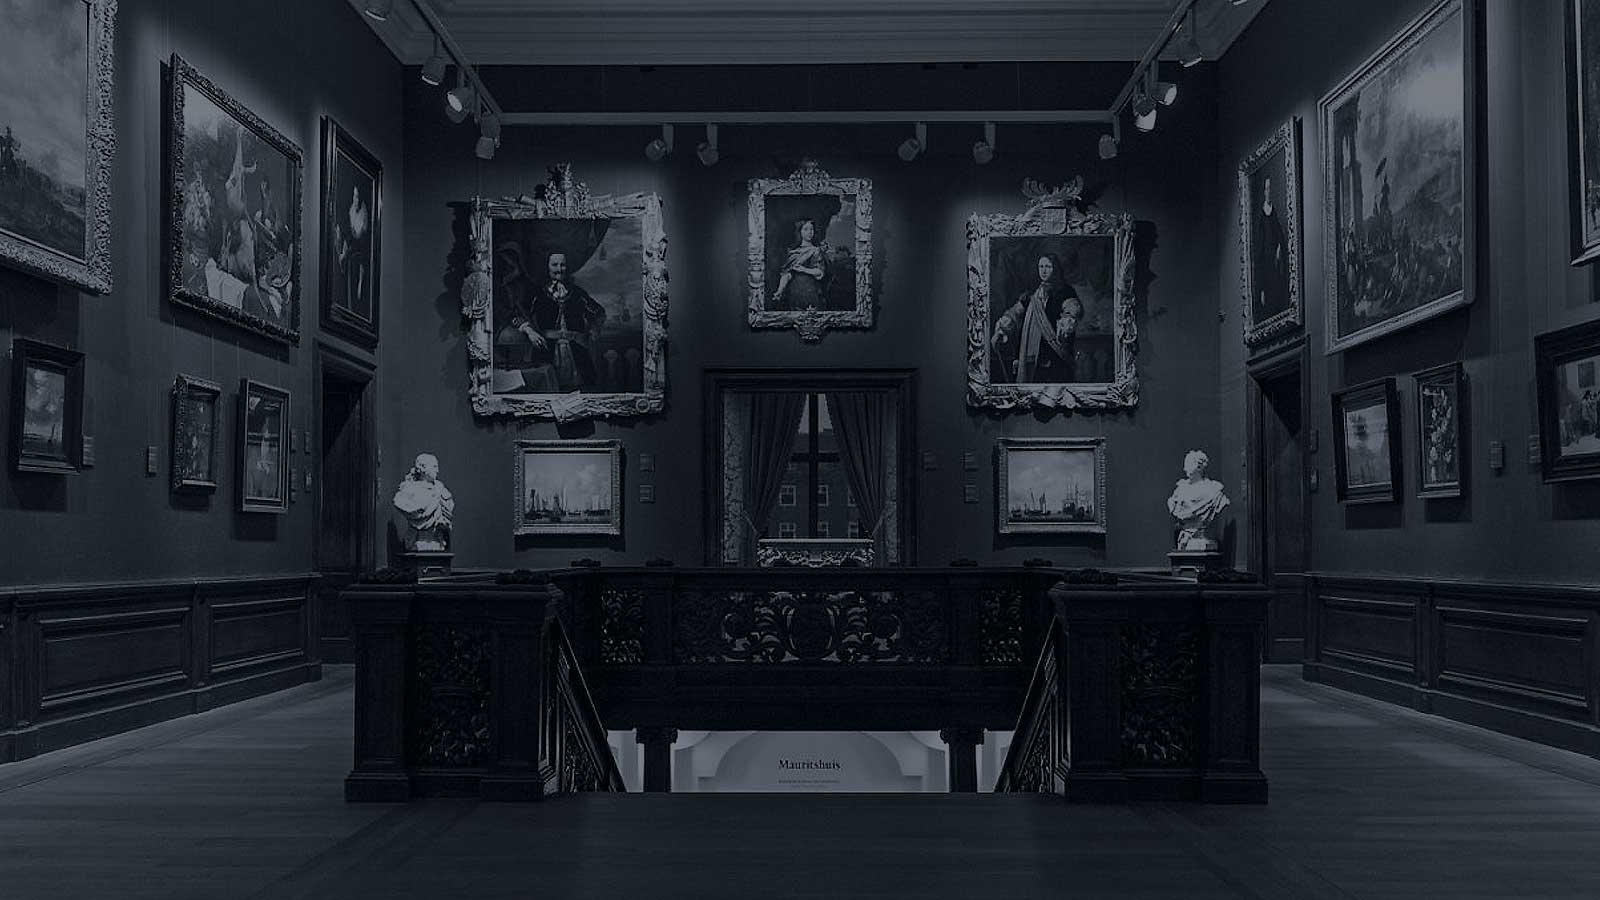 Thumbnail image of the Mauritshuis art collection